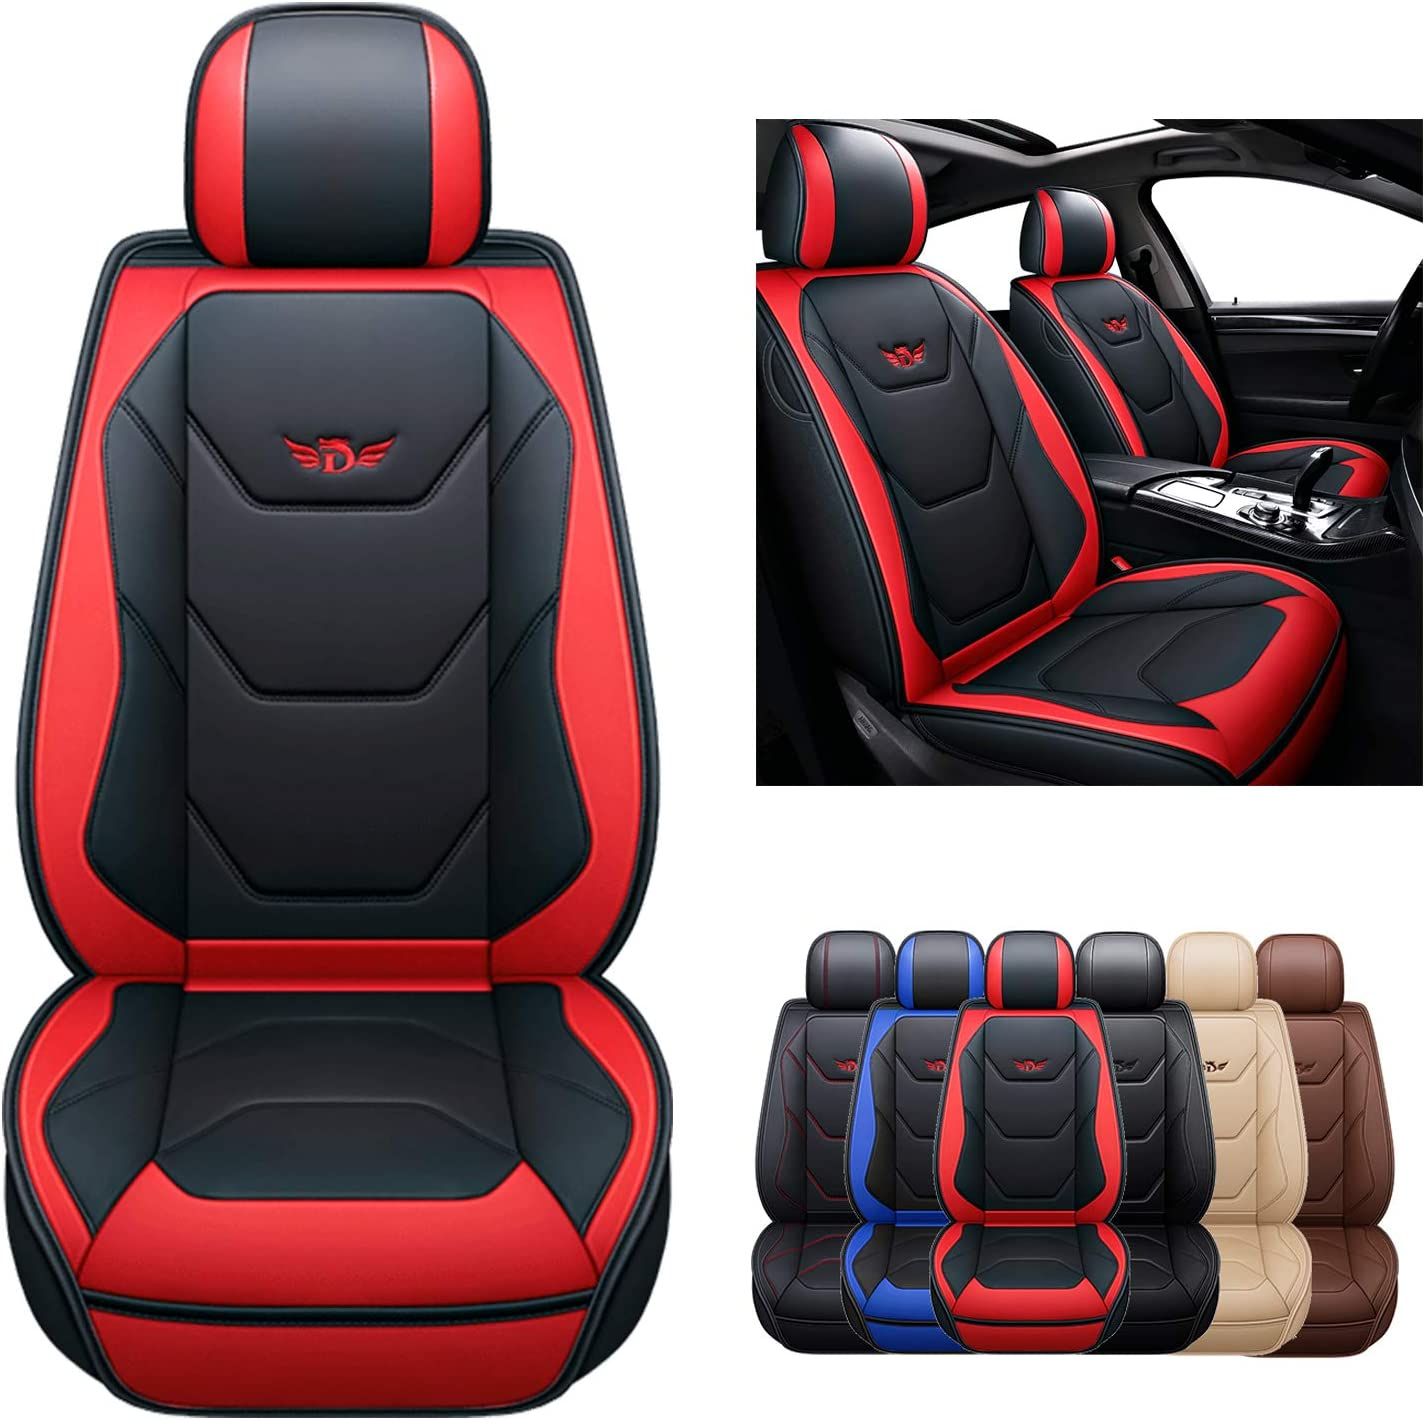 Sogloty Leather Car Seat Covers Auto Front Rear Cushion Cover $49.99 Coupon